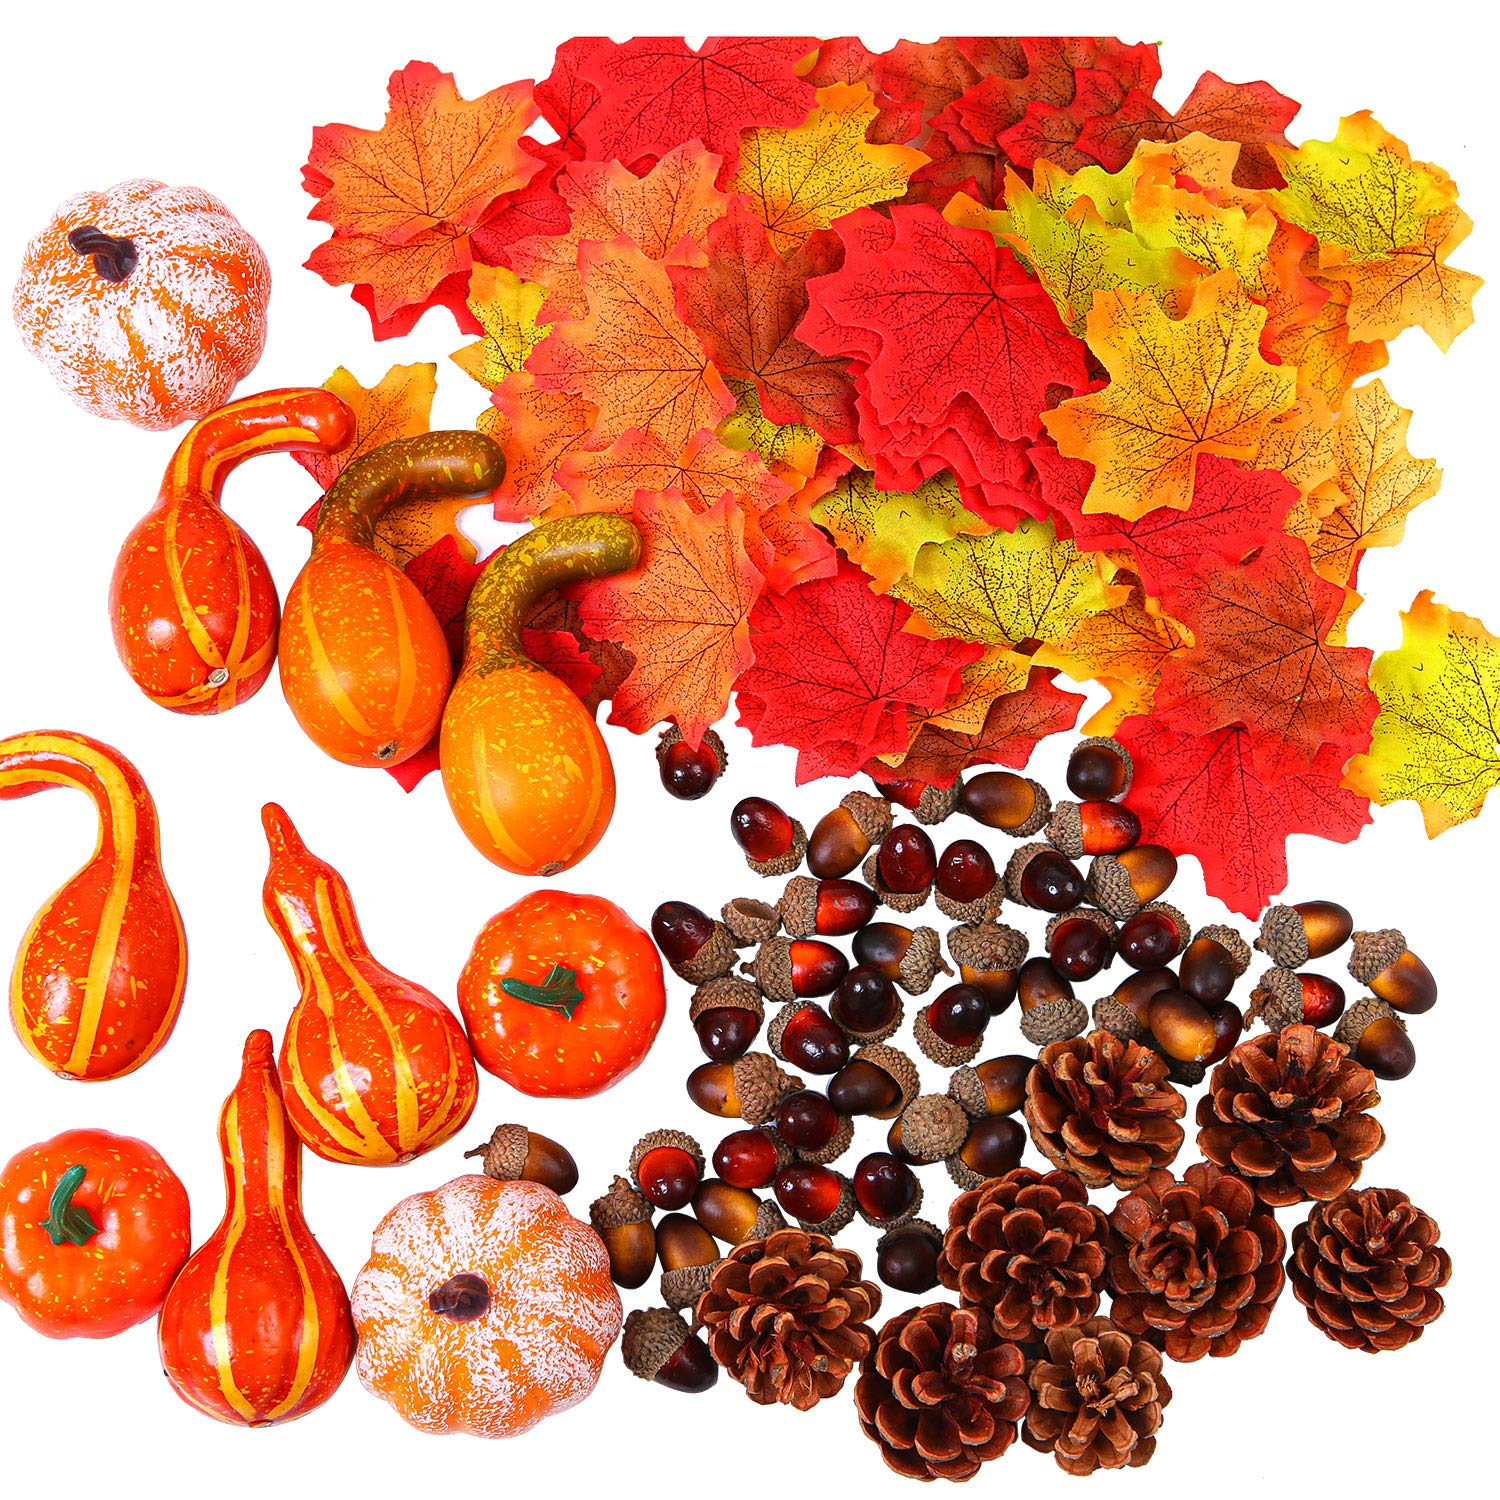 Fall and Thanksgiving Home Table Decoration Wood.L Artificial Maple Leaves Harvest Pumpkins Gourds 166 Pieces Pine Cones and Acorns Set for Autumn